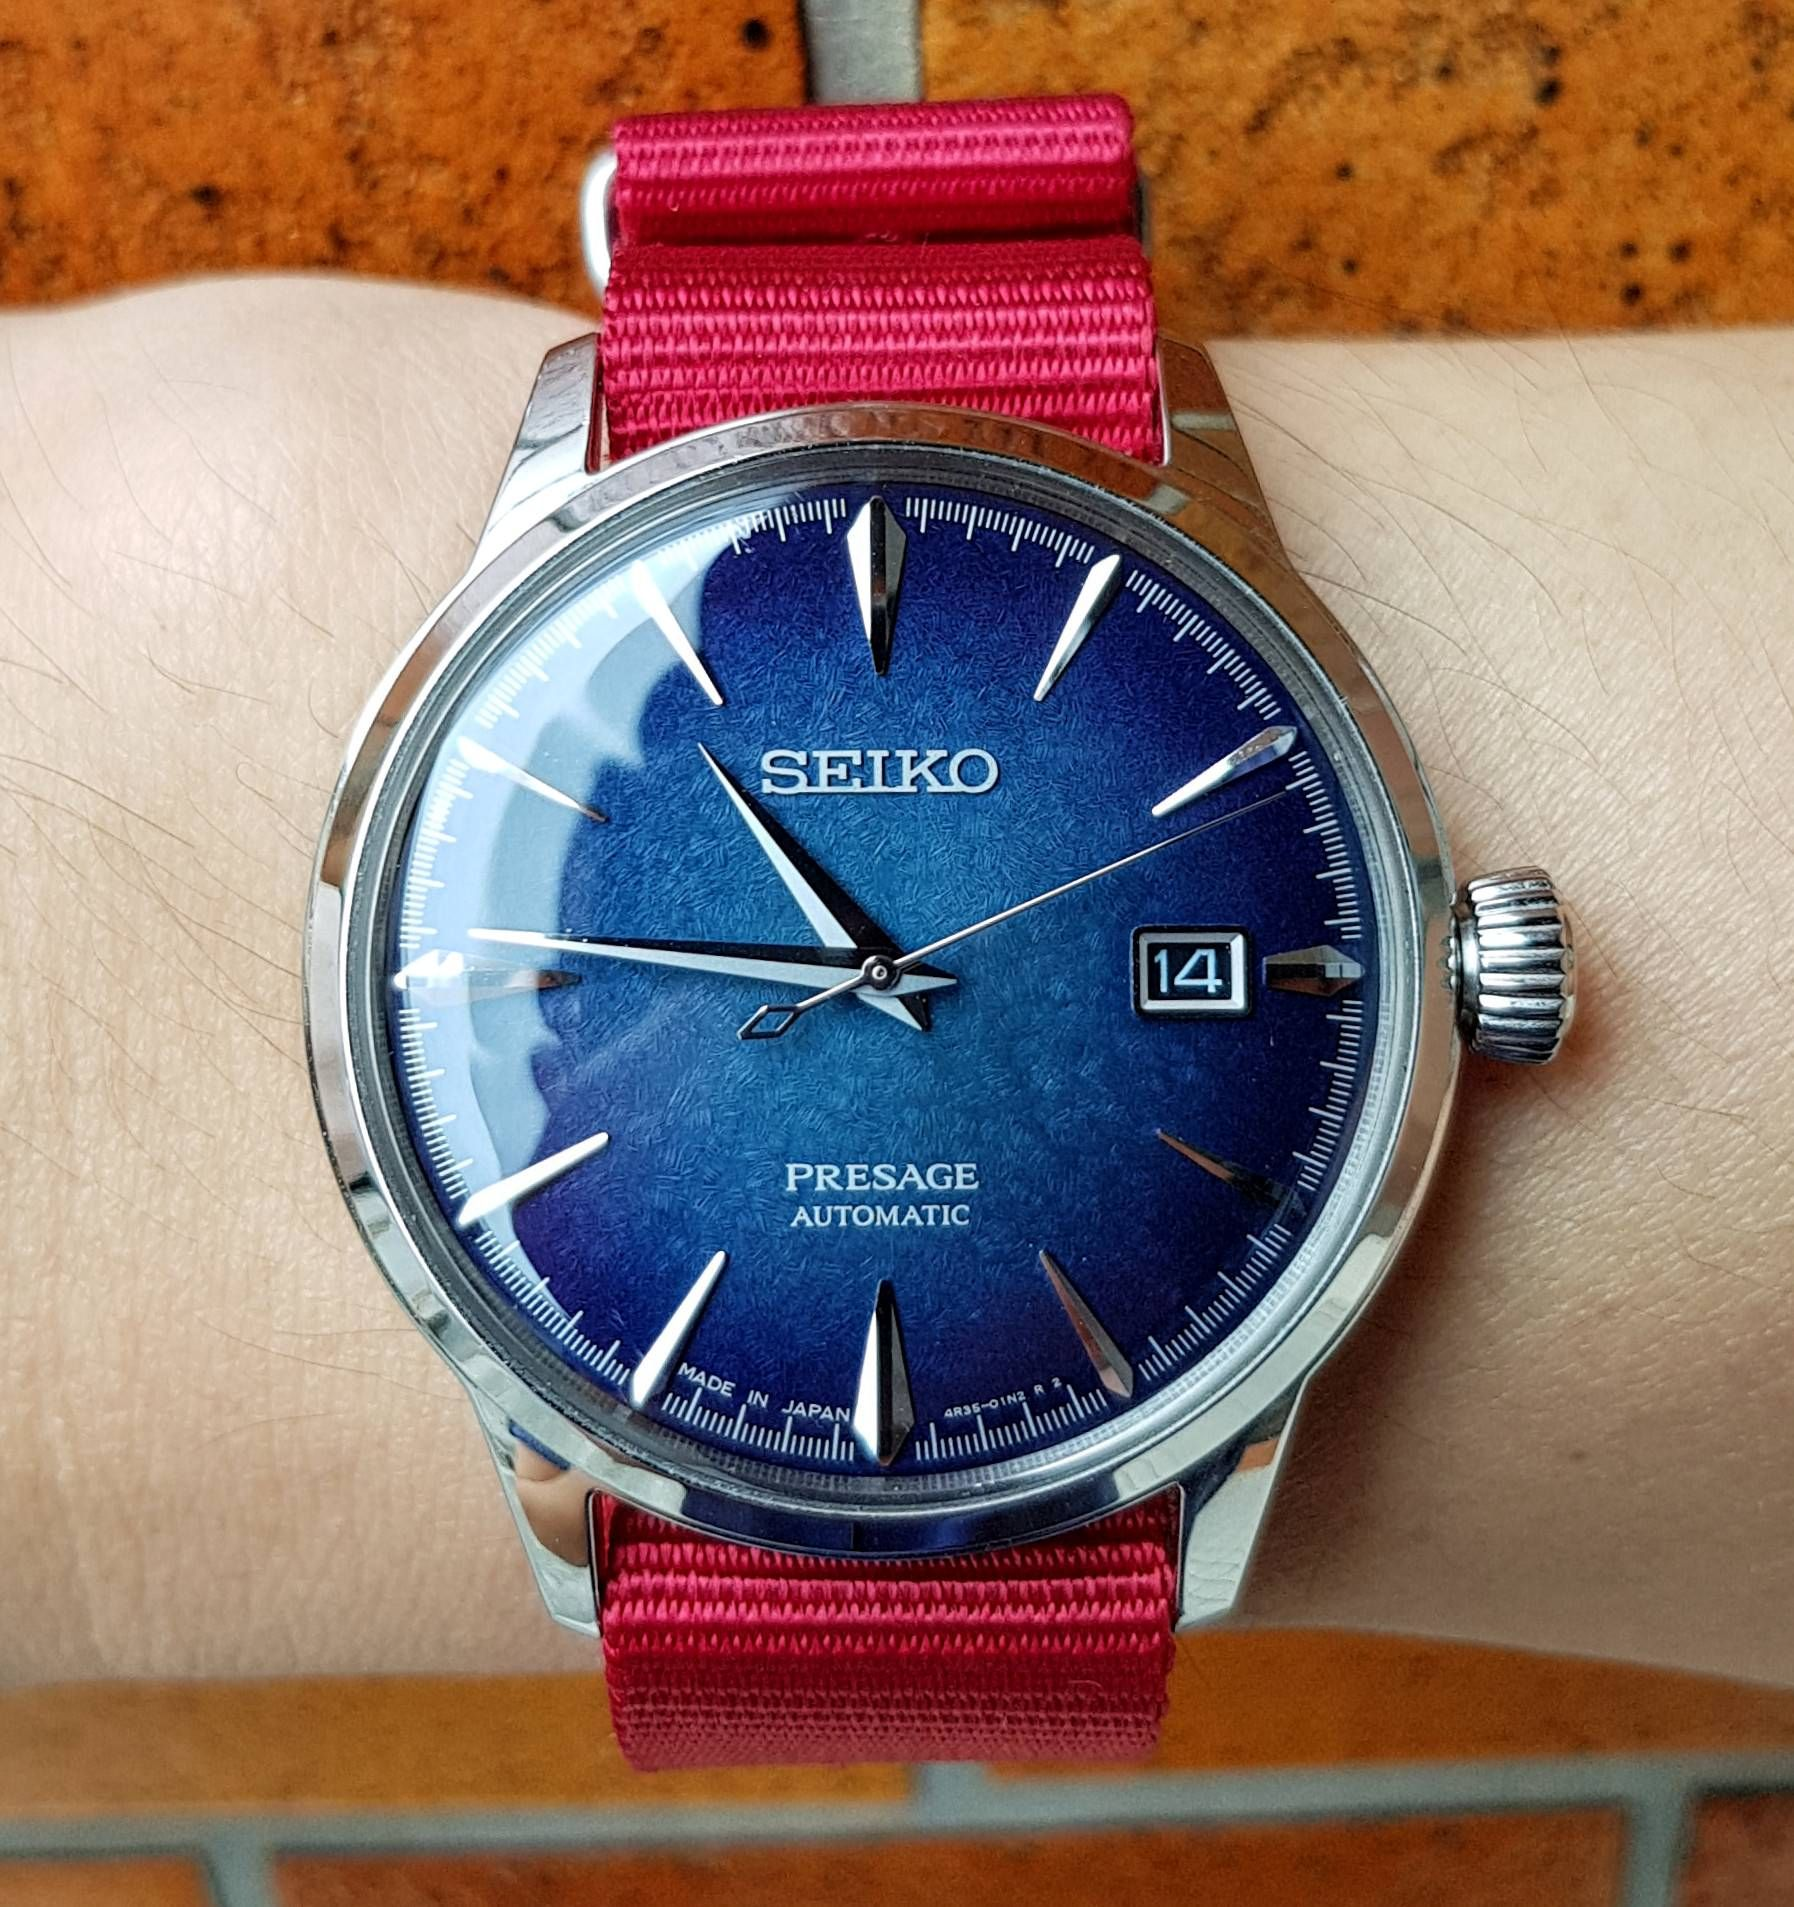 Seiko] The Starlight might be one of the most beautiful